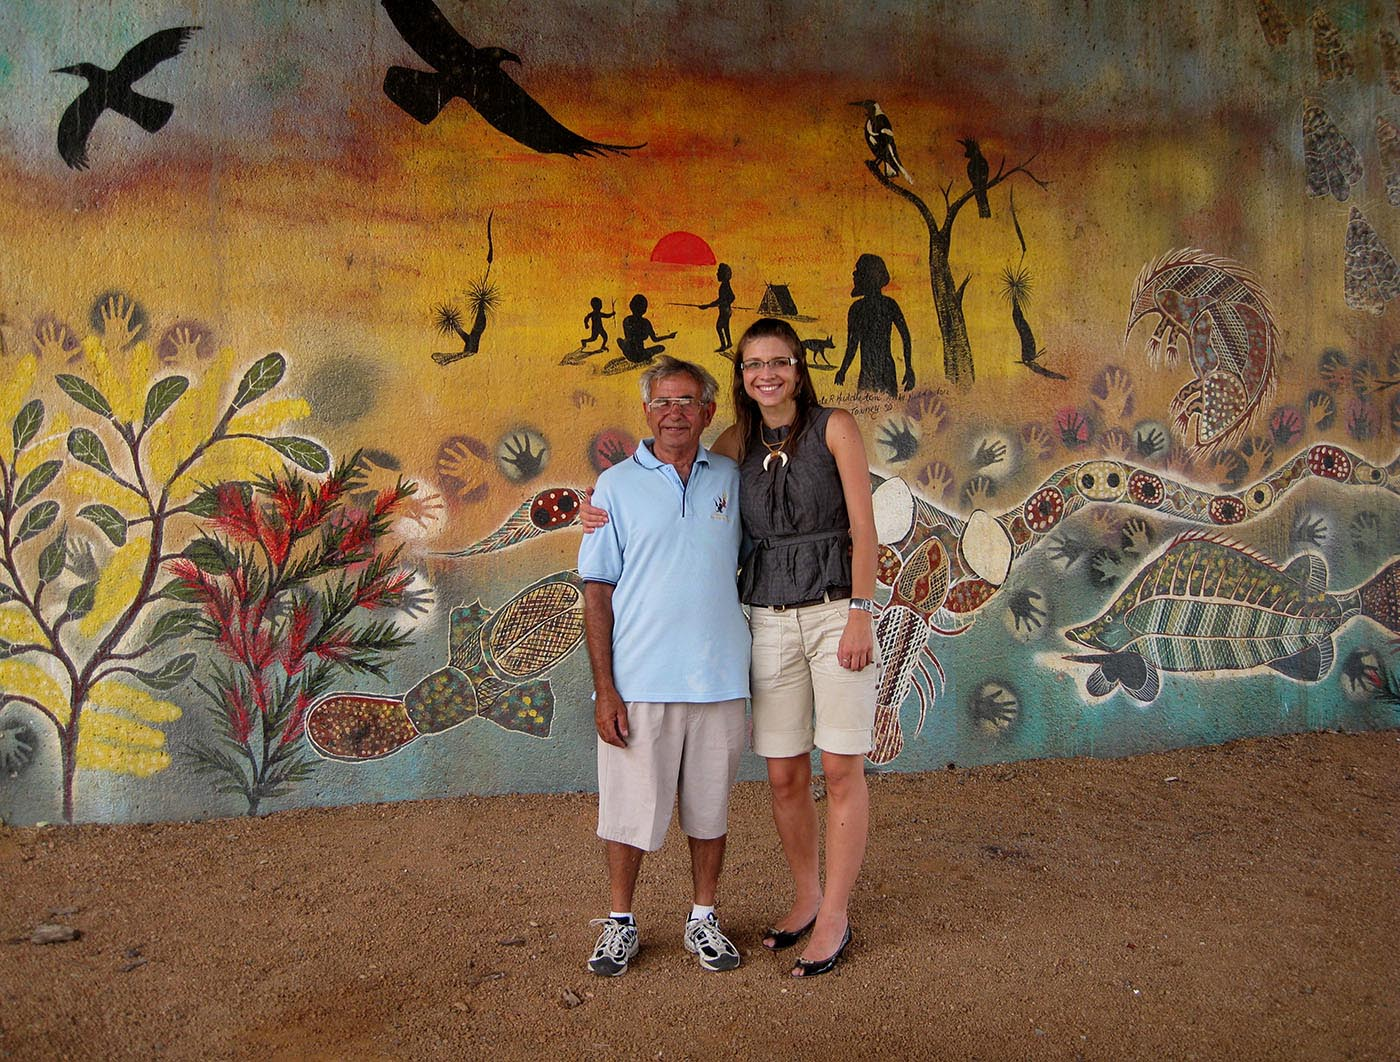 Eric Bell and Karolina Kilian stand in front of a large mural of Aboriginal motifs.